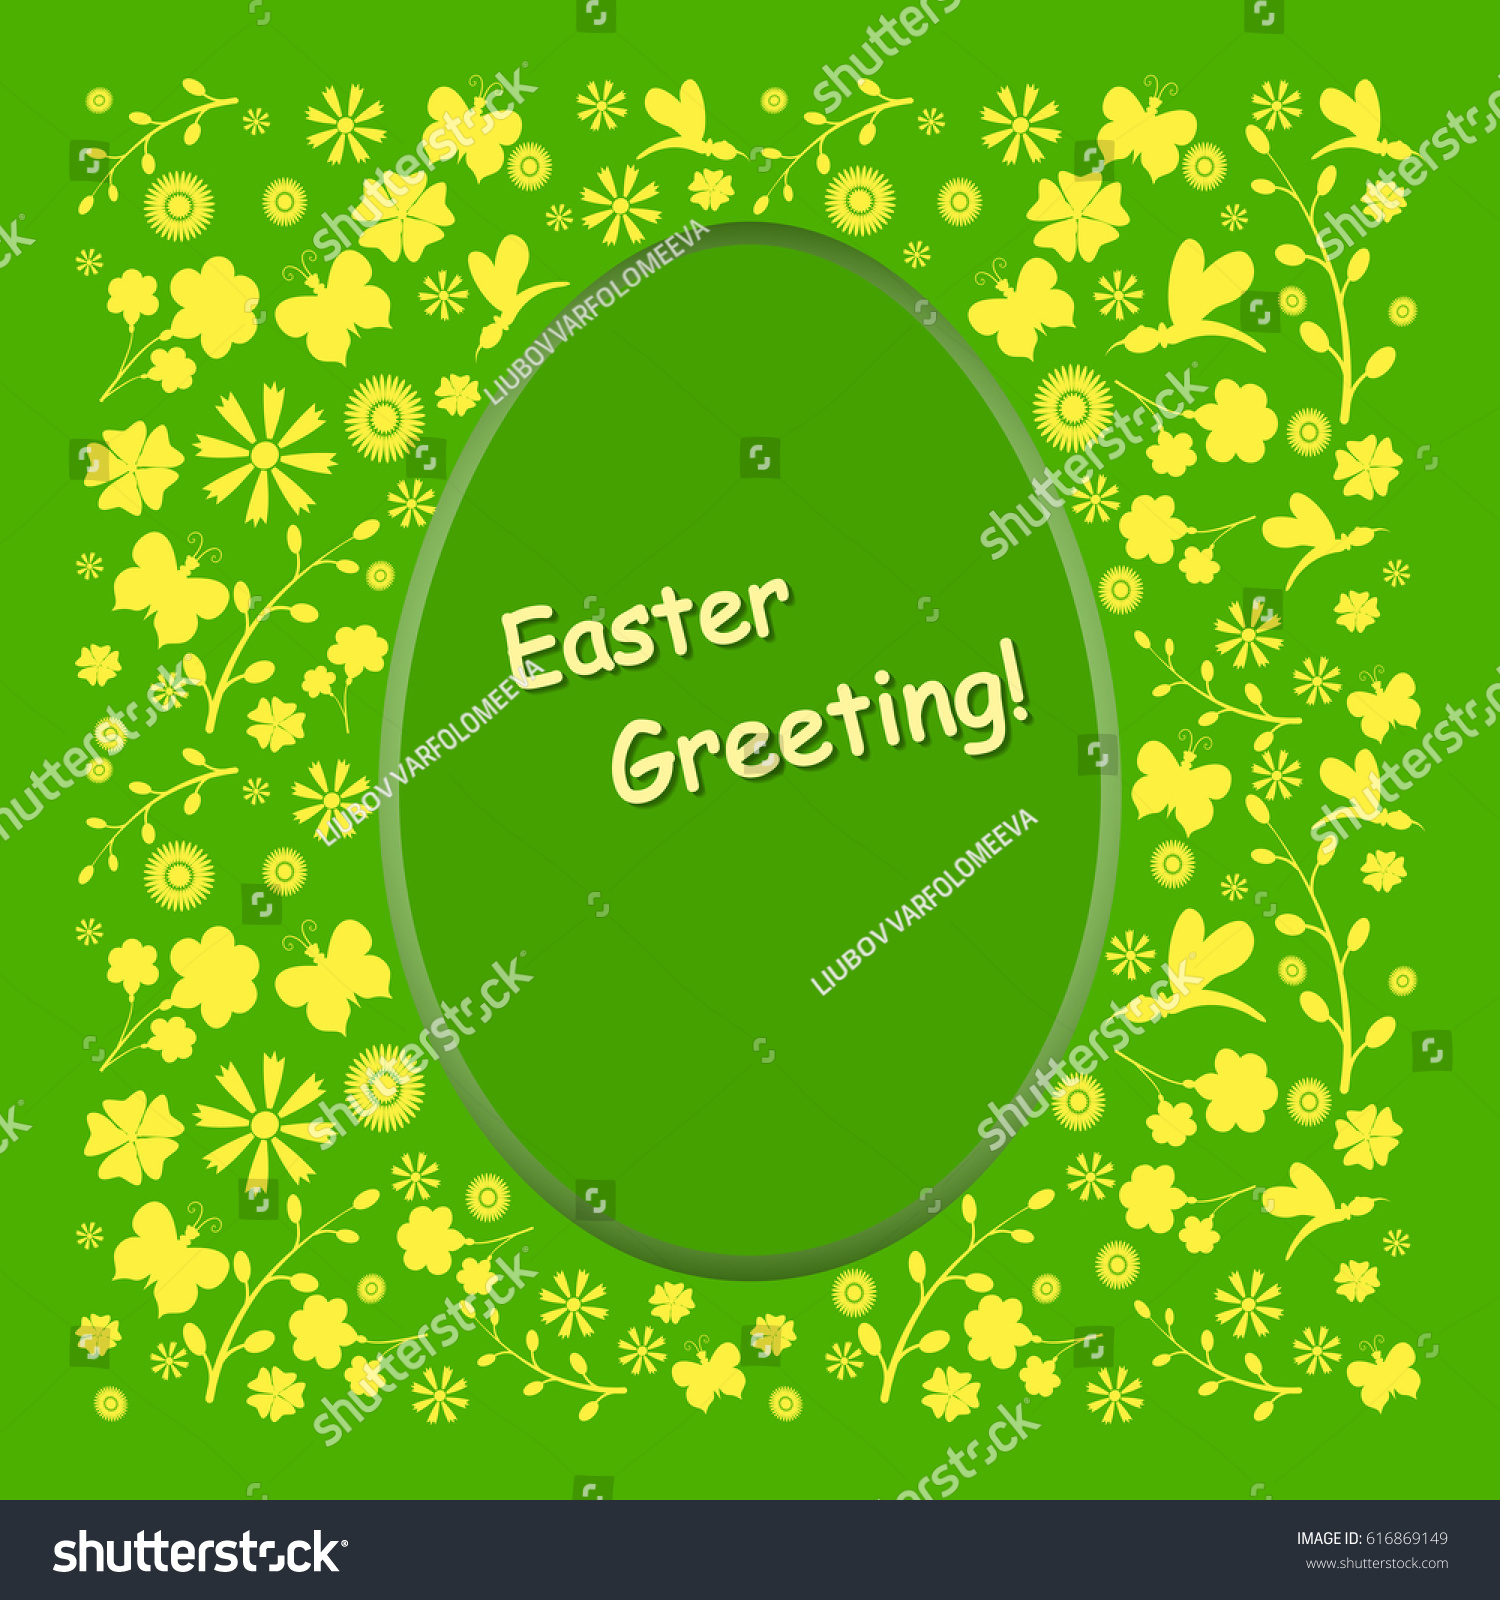 Holiday greeting easterbeautiful card illustration easter stock the holiday greeting for easterautiful card illustration with easter symbols and lettering kristyandbryce Images